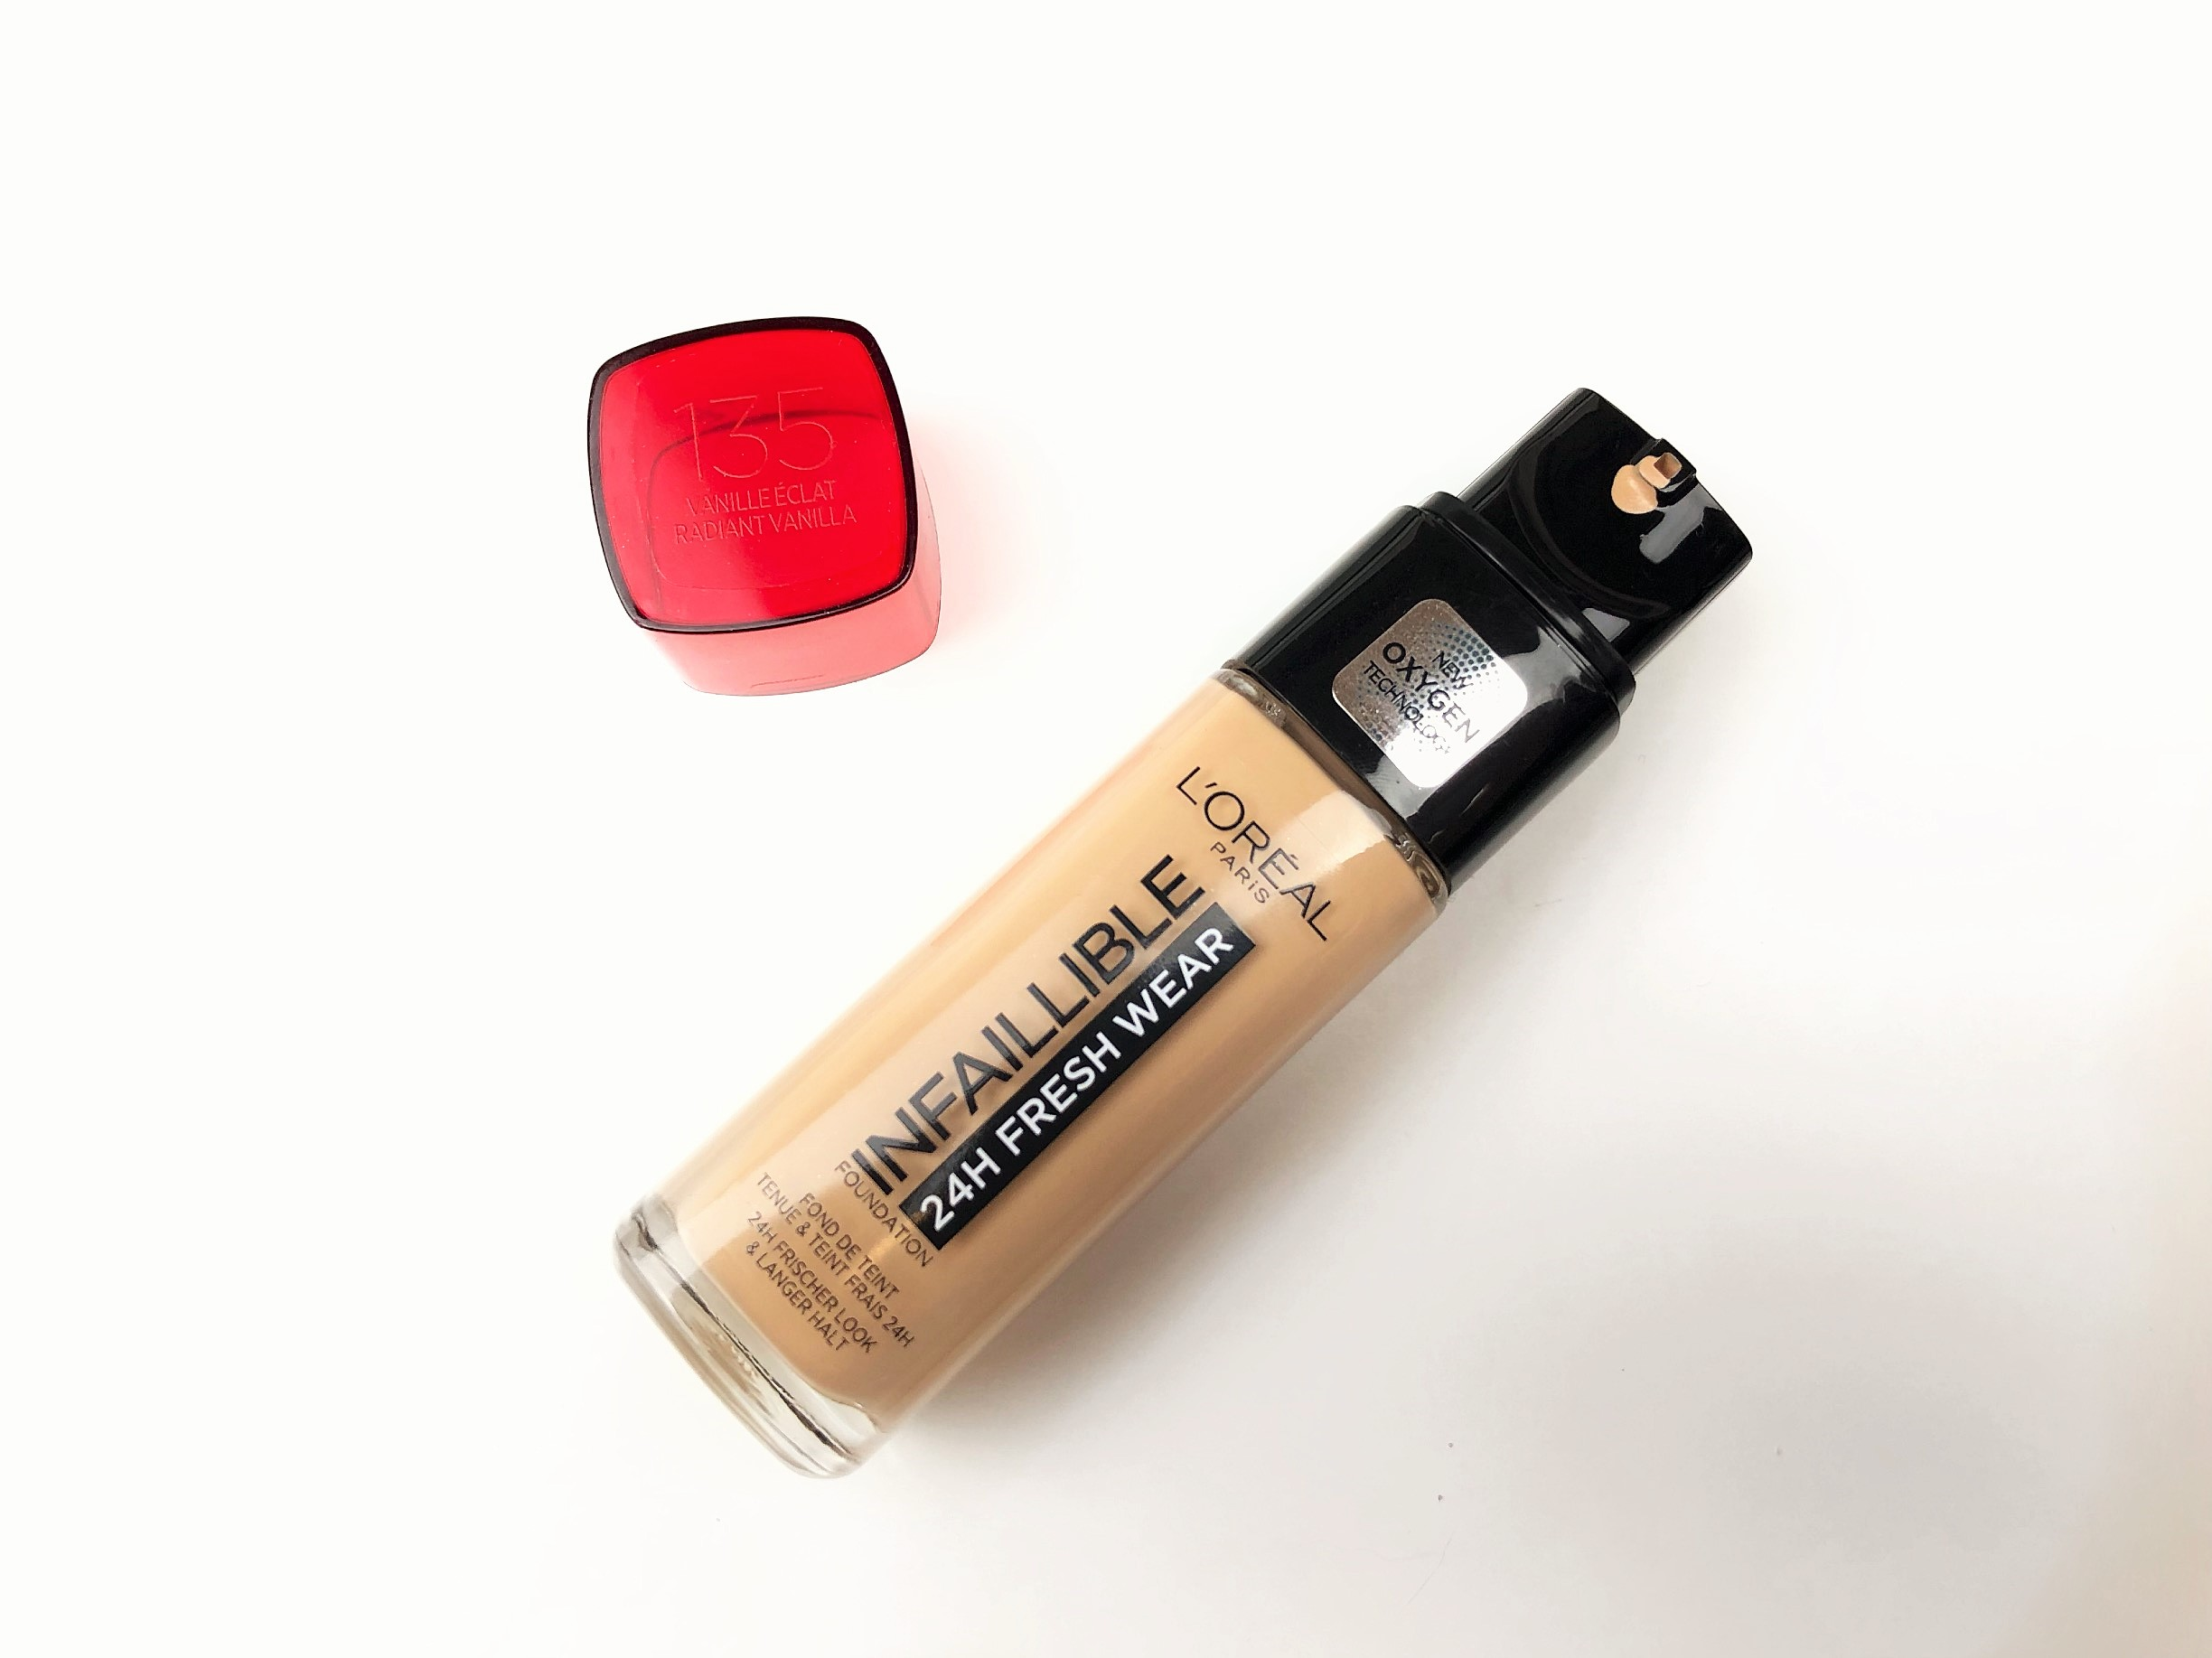 Recensione L'Oréal Infaillible 24H Fresh Wear Foundation (4)